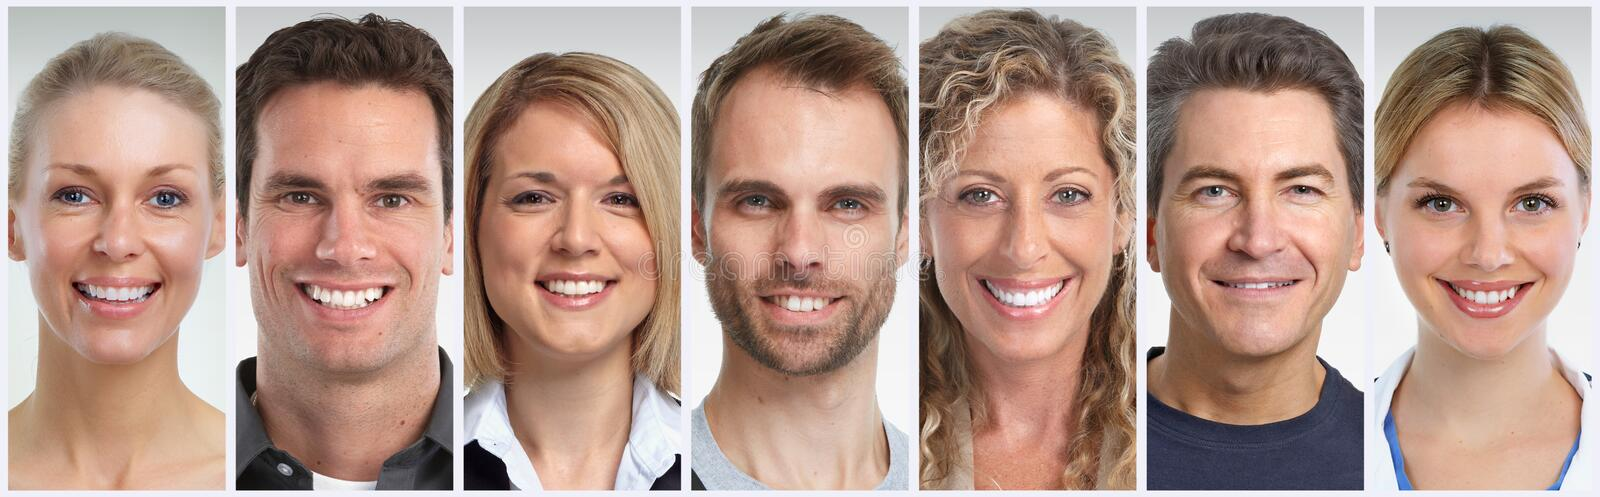 Smiling people faces set royalty free stock photos